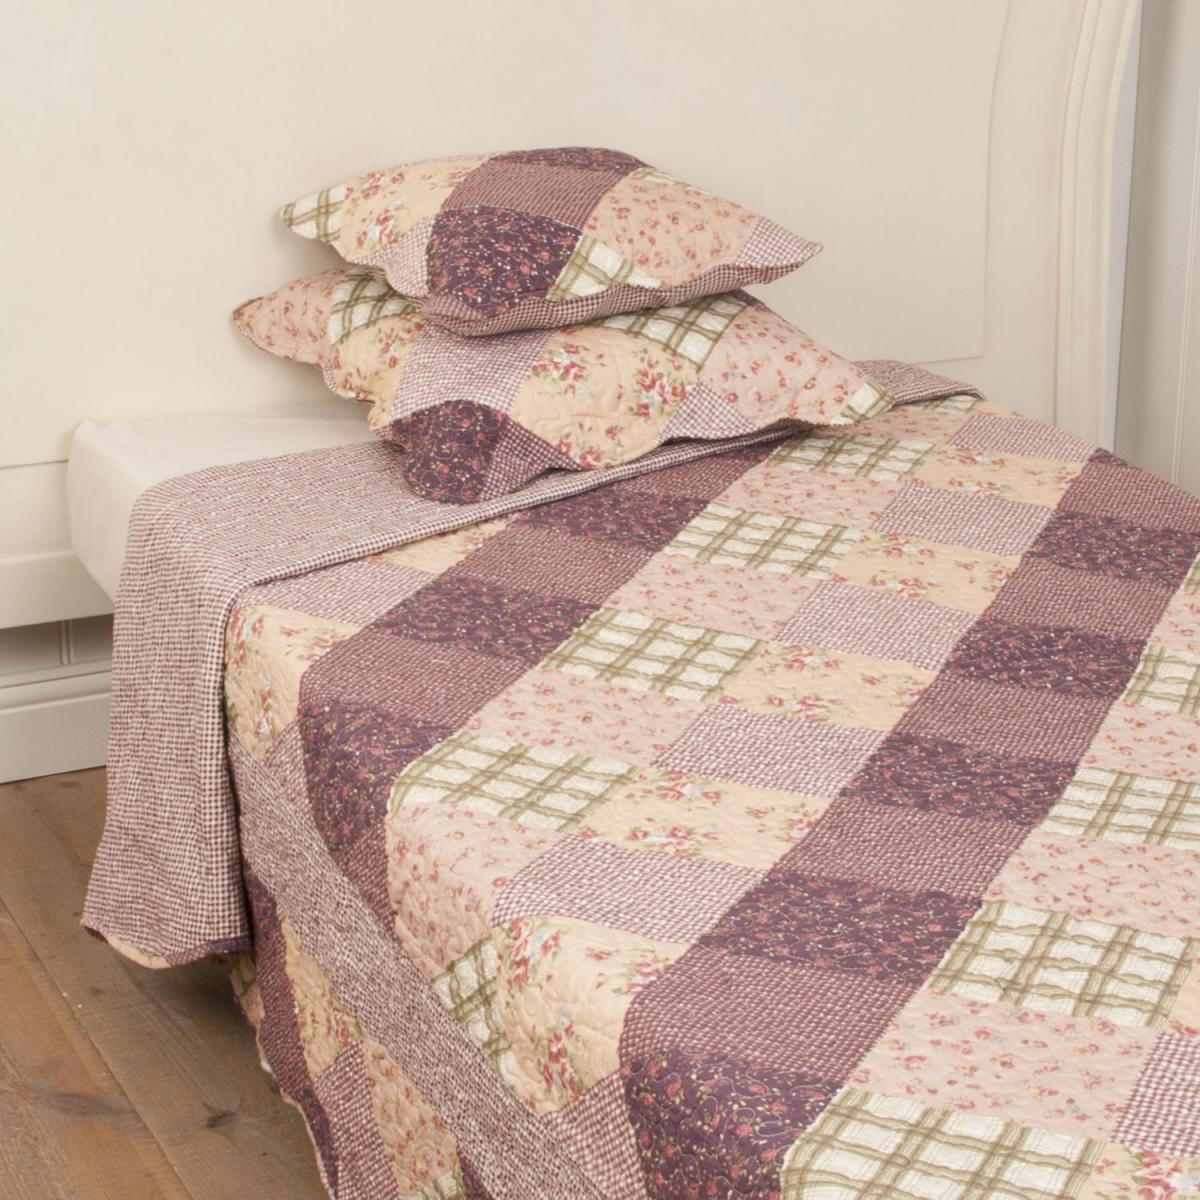 Bettdecke Tagesdecke Plaid Decke Weiss Stickerei Floral Clayre And Eef Q123 061 Tagesdecke Quotblumen Lila Quot 230 X 260